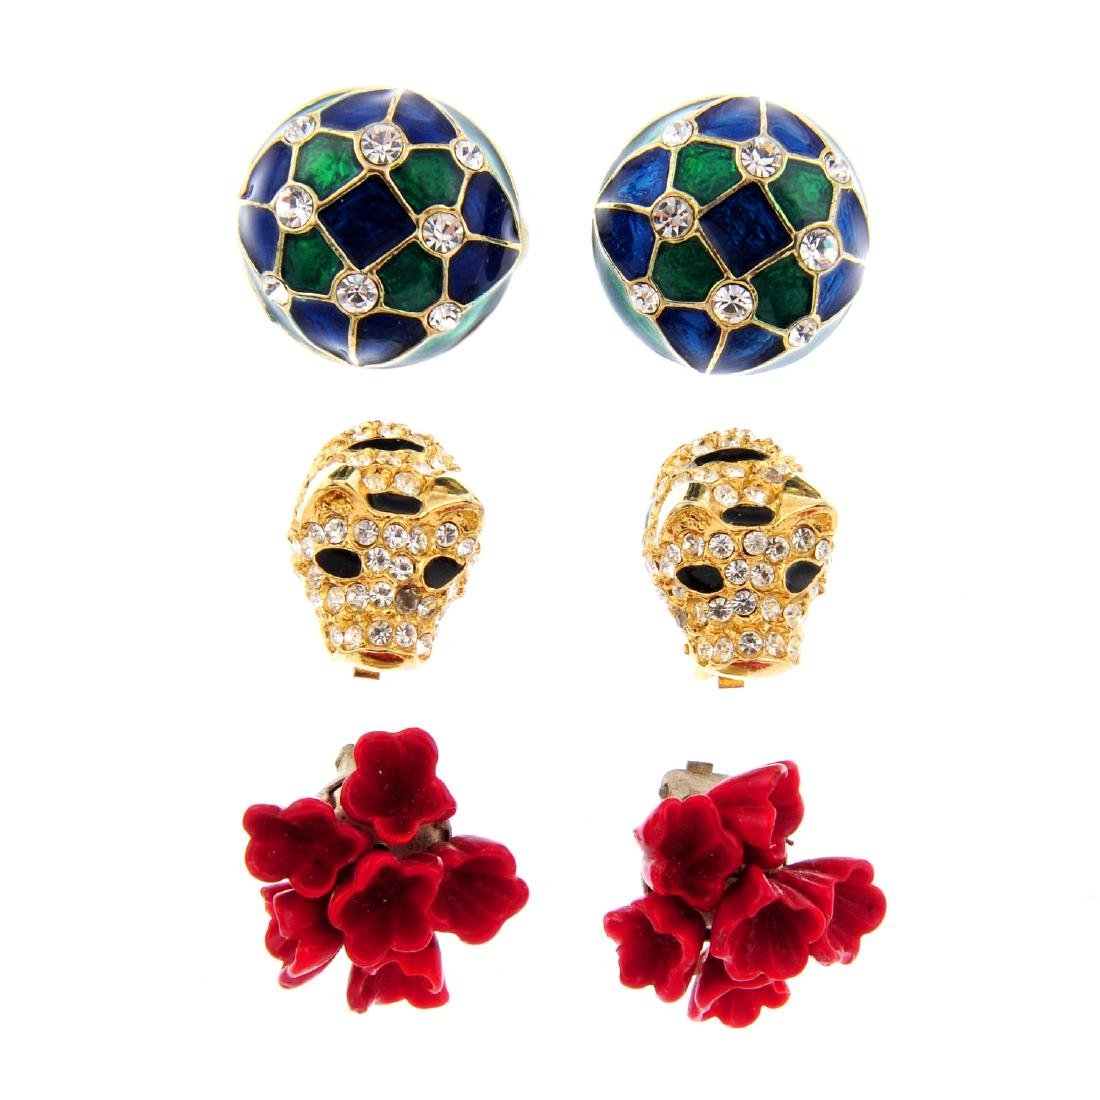 A large quantity of costume jewellery earrings.